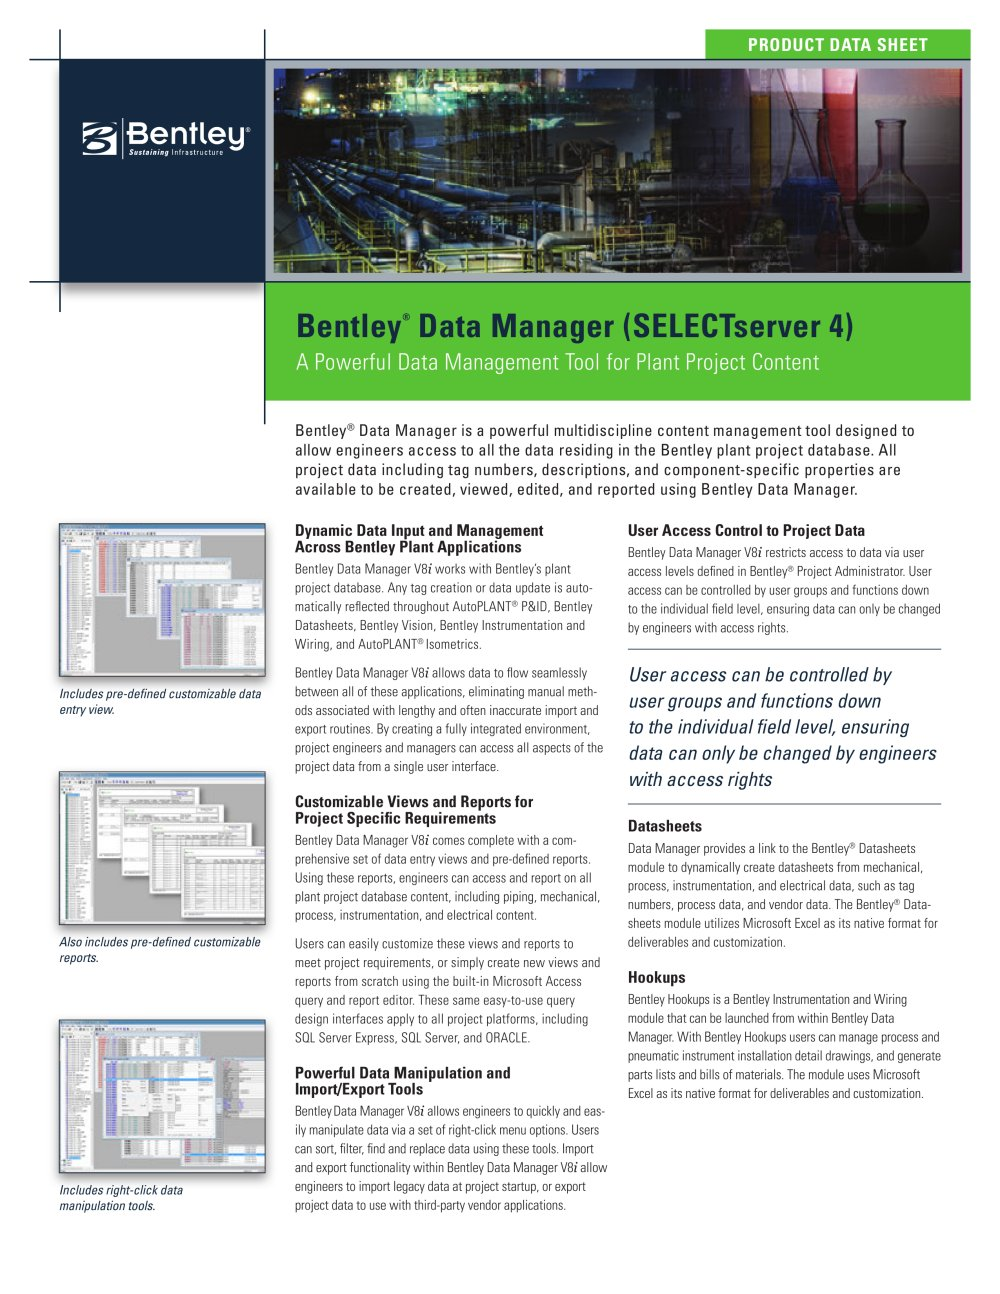 Bentley data manager 1 2 pages